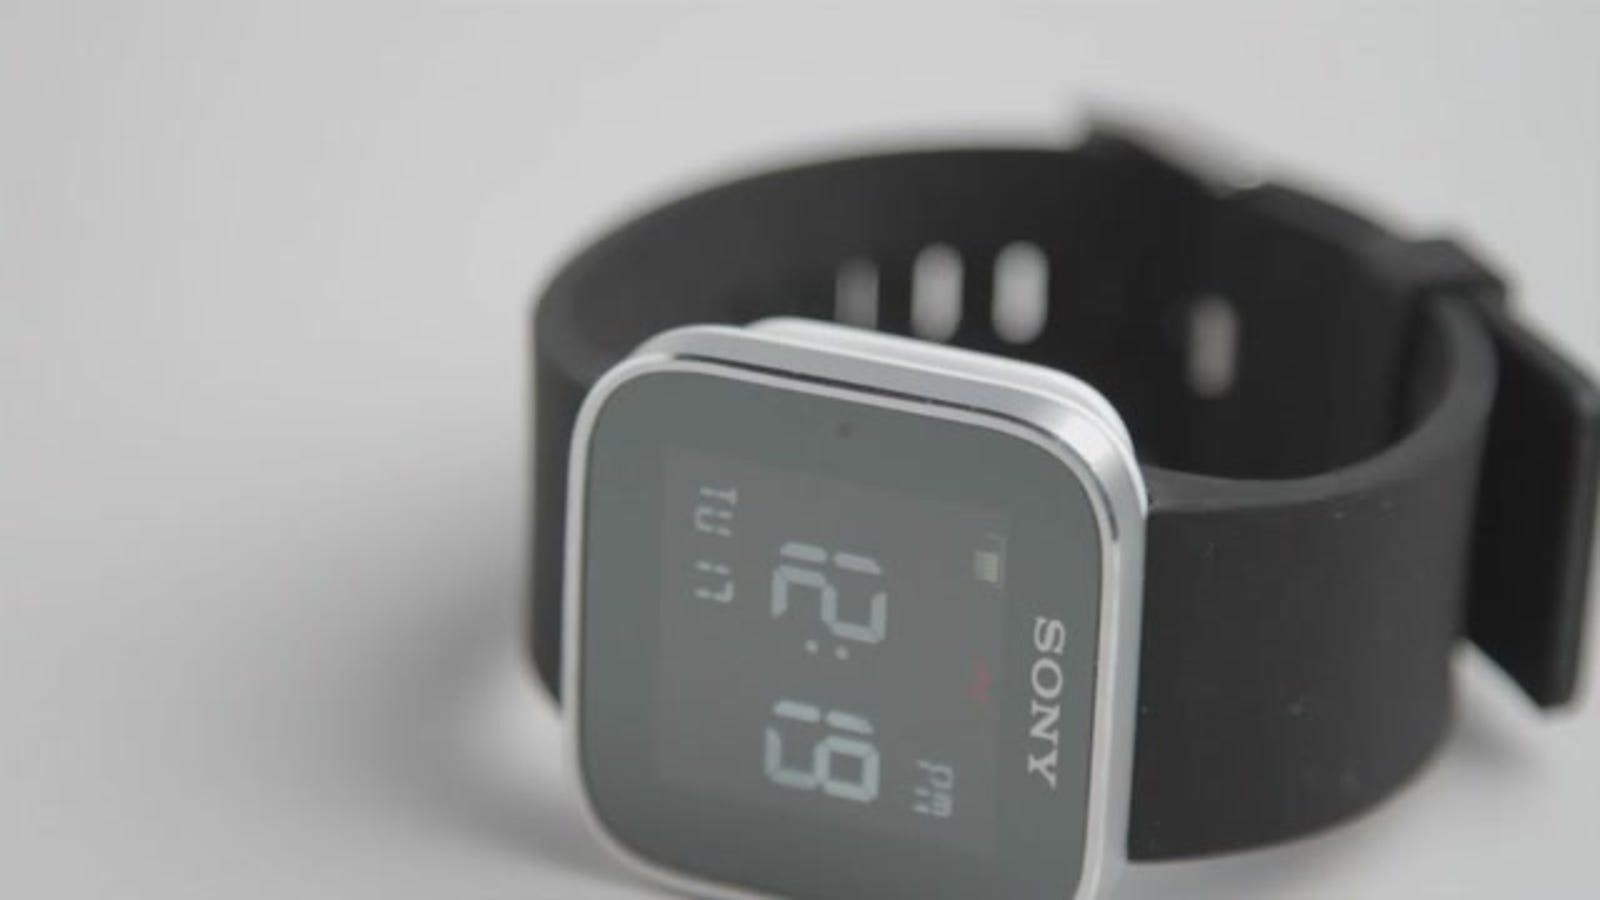 Sony SmartWatch Review: Maybe the Worst Thing Sony Has Ever Made